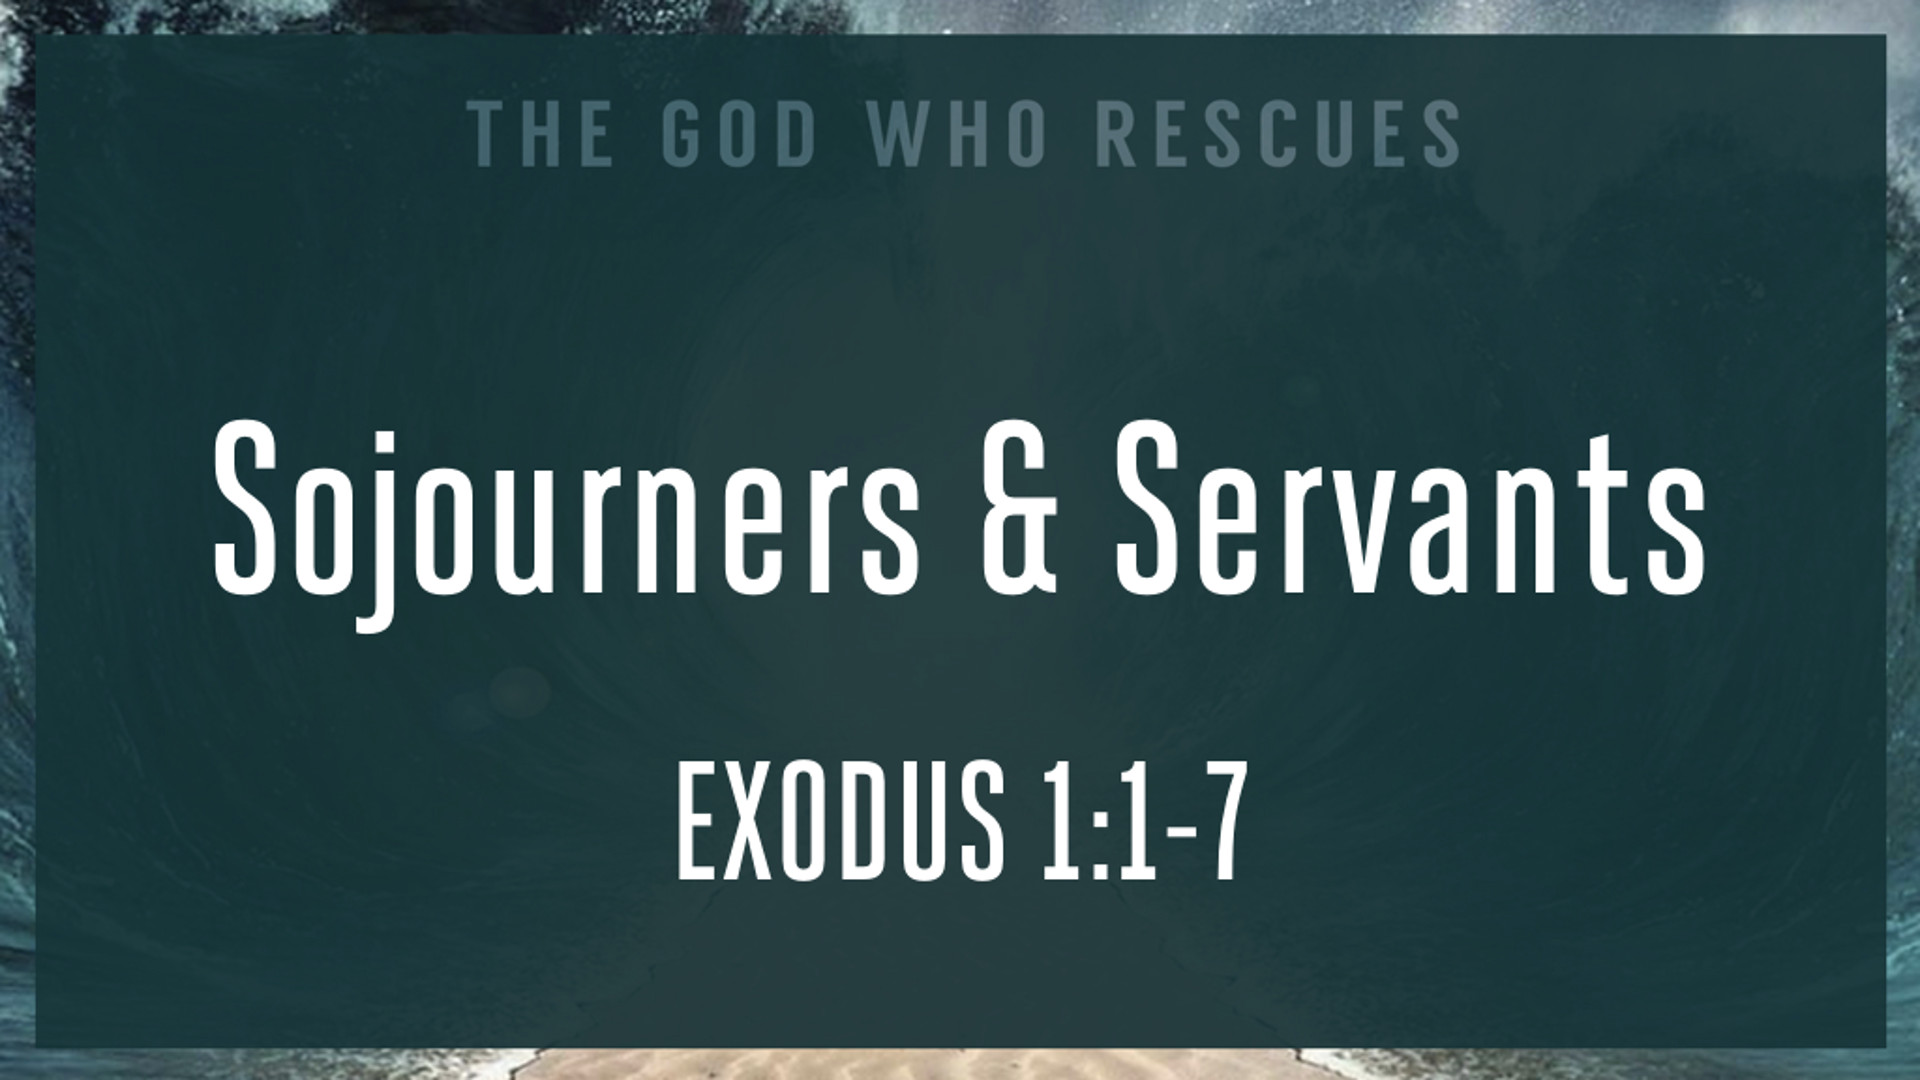 Exodus 1.1-7 Sojourners and Servants.jpg